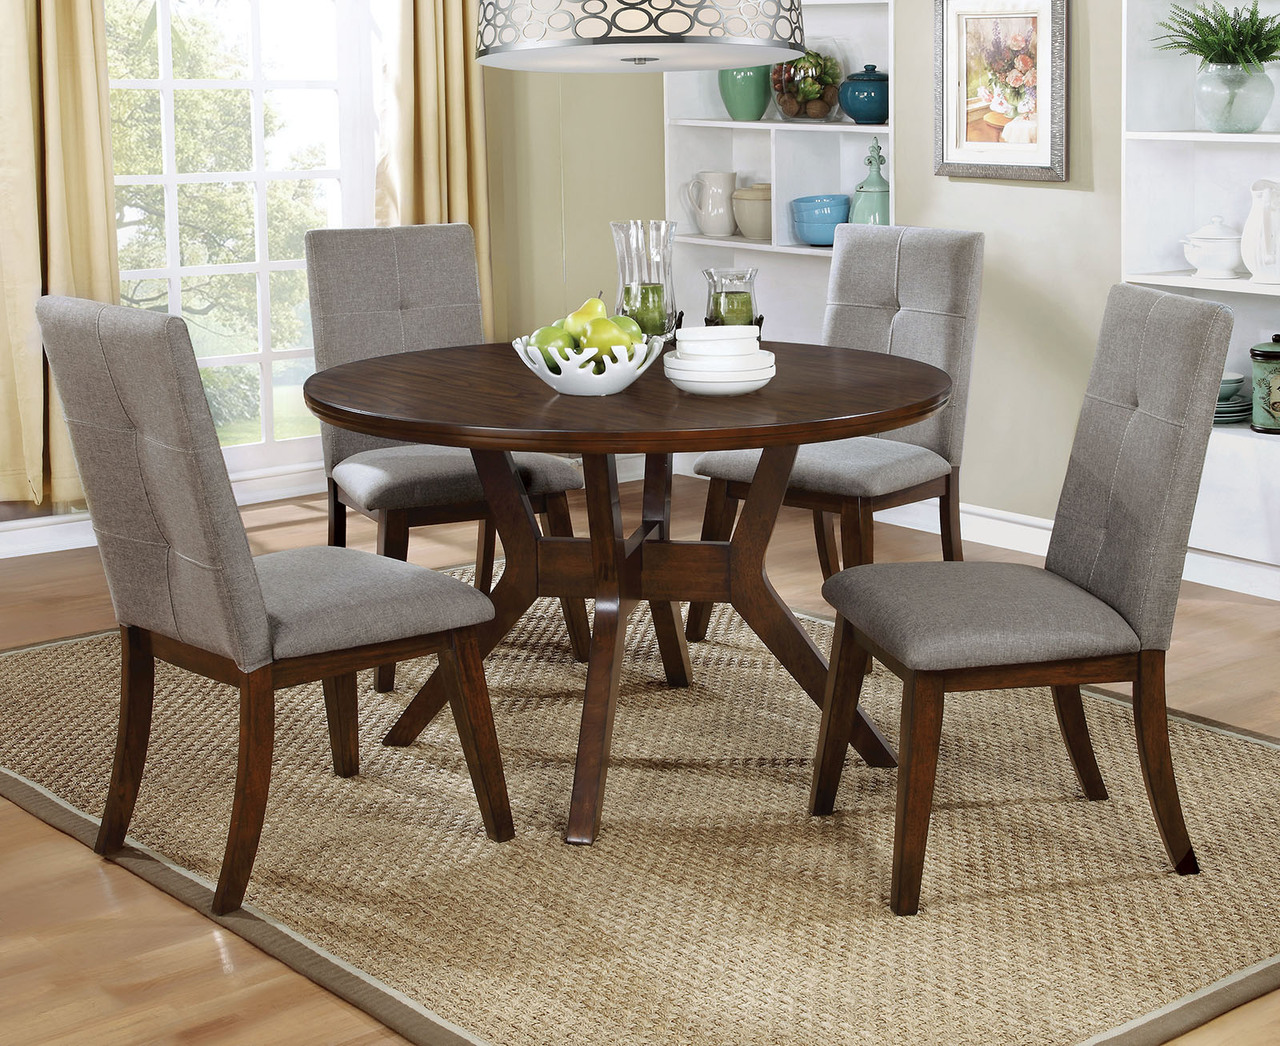 Furniture of America Walnut Round Dining Table Set